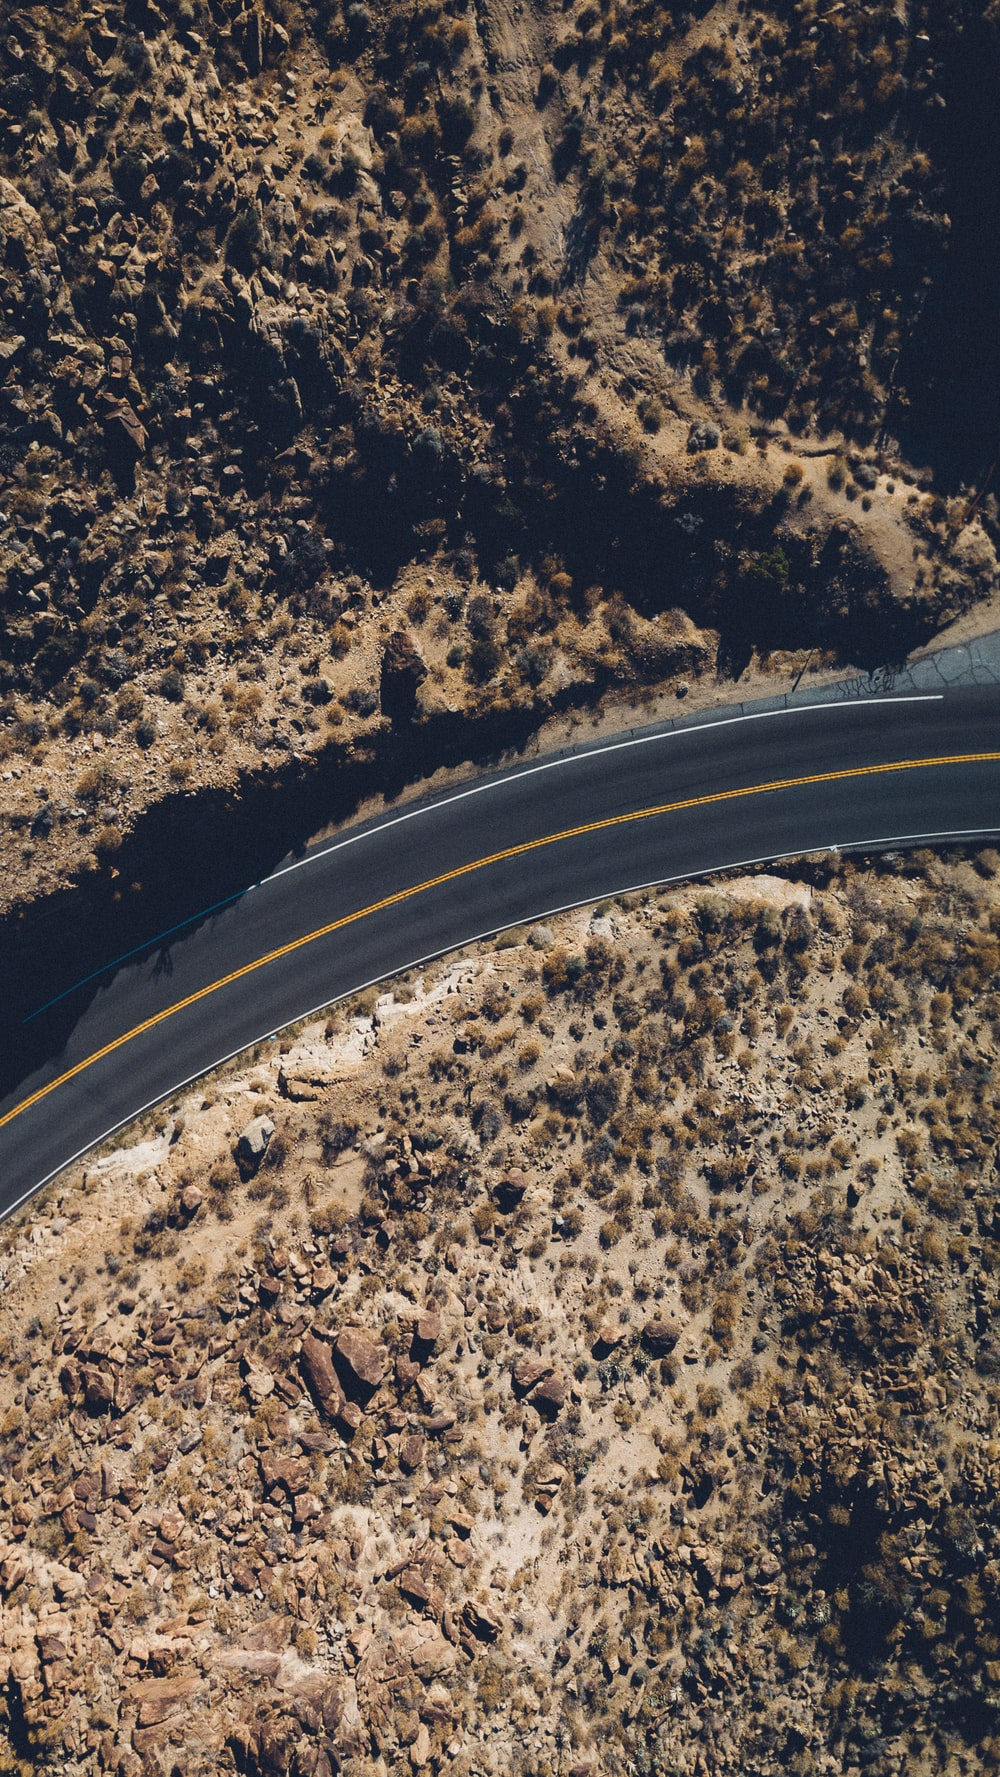 aerial view of road between tall trees at daytime